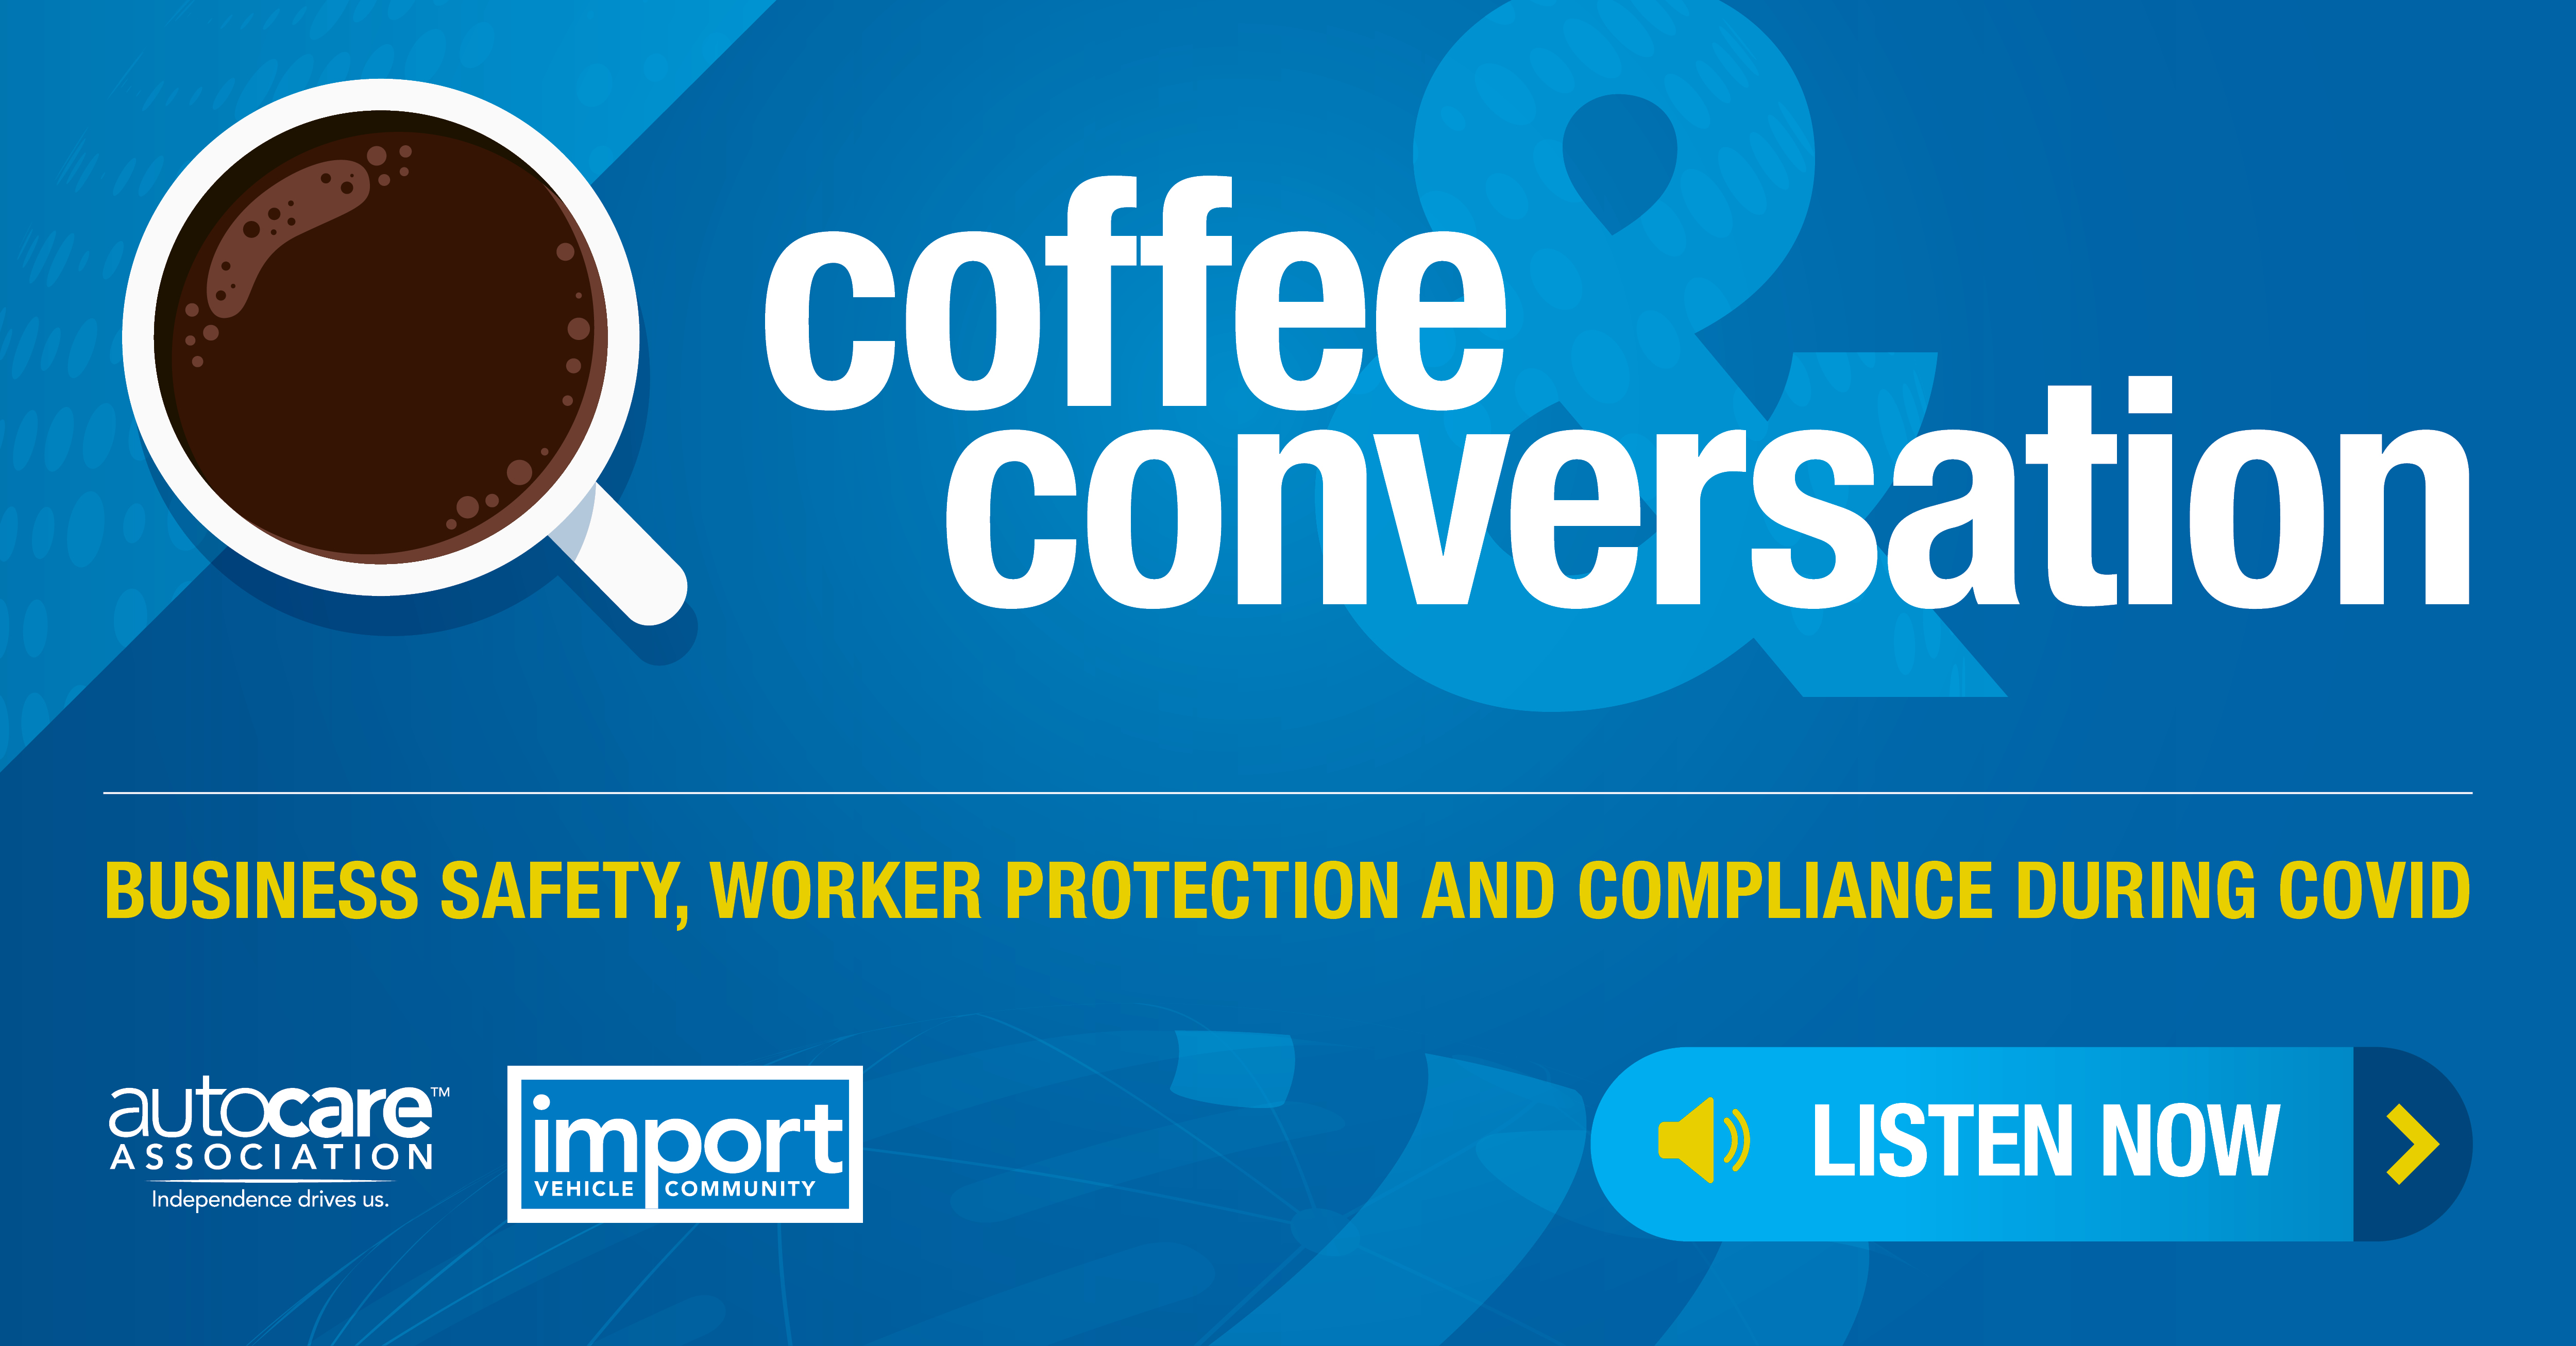 Coffee and Conversation 3: Business Safety, Protection and Compliance During COVID